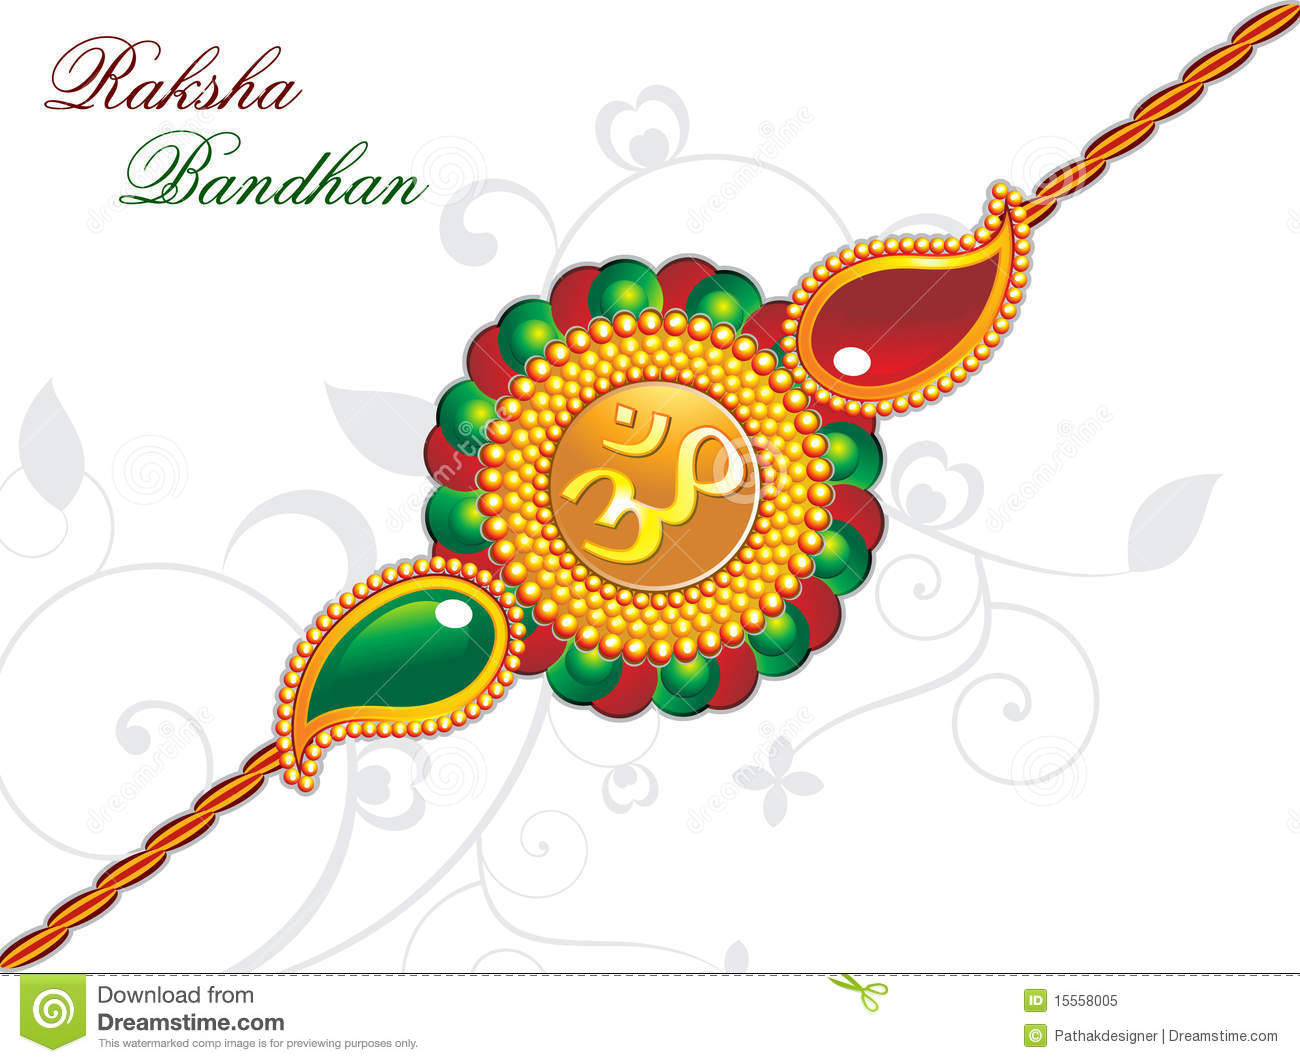 happy raksha bandhan quotes status wishes images meesages raksha bandhan messages raksha bandhan quotes in hindi rakhi msg raksha bandhan quotes